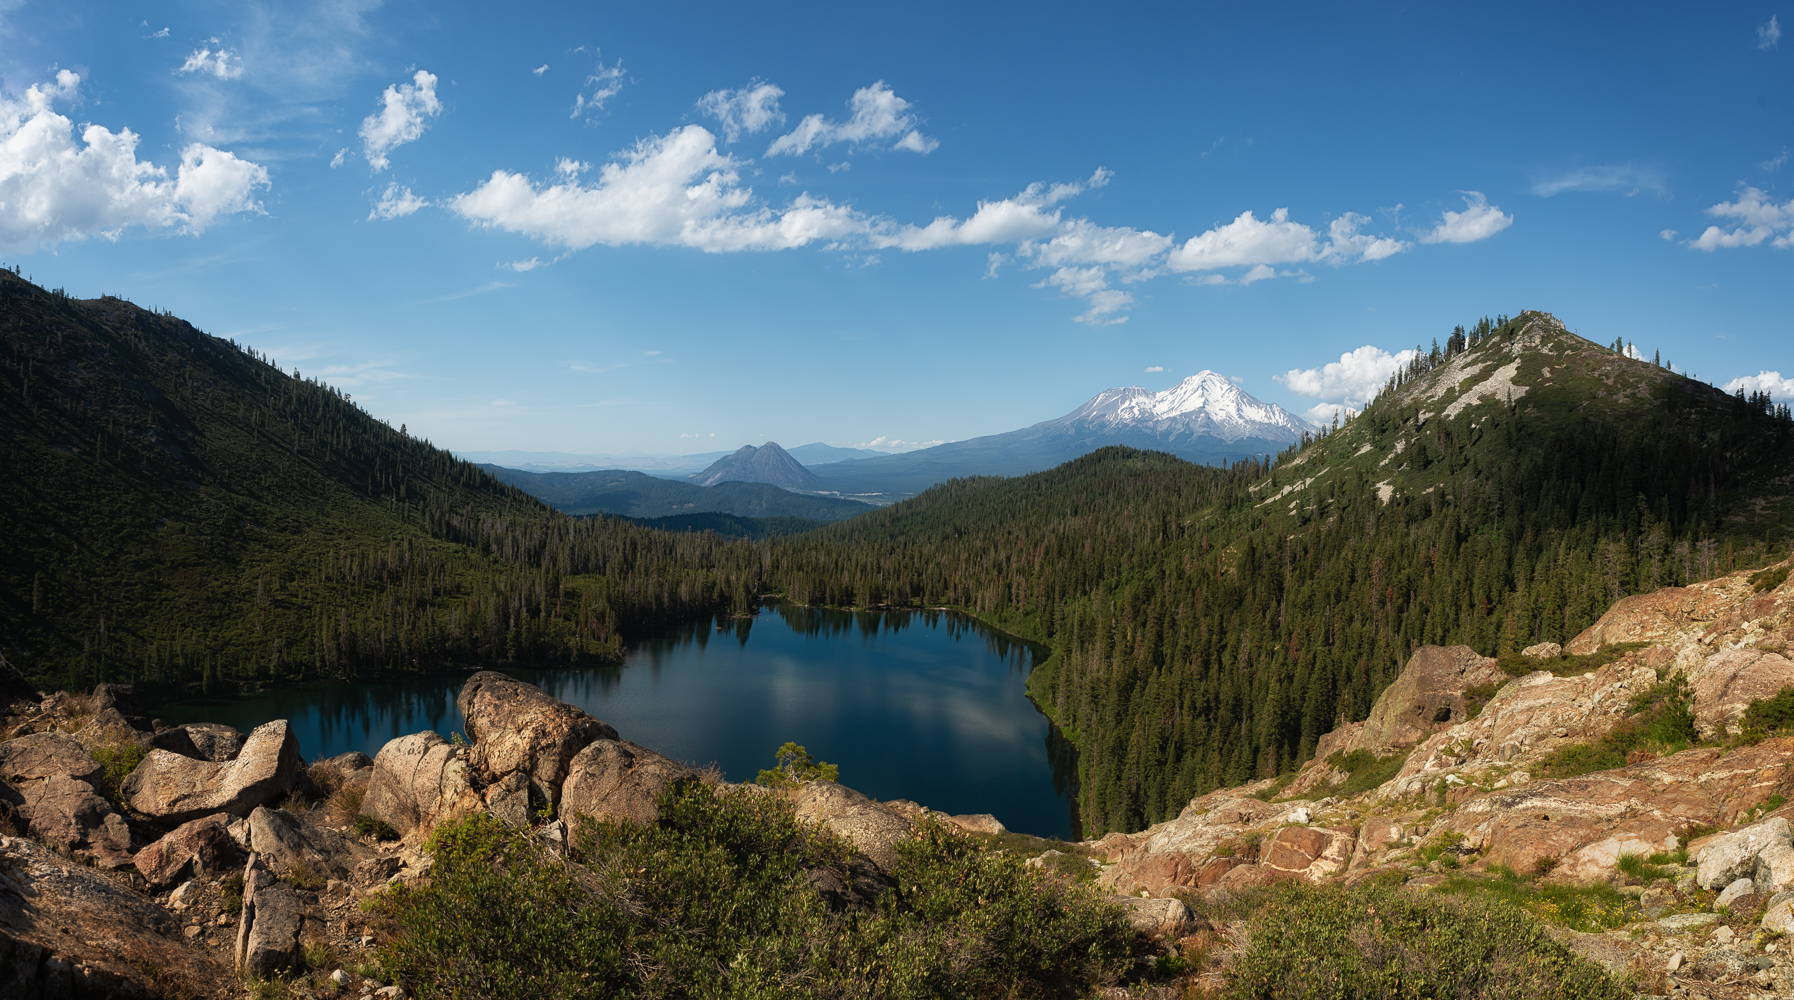 What a view: inside the Castle Crags Wilderness overloking Castle Lake towards Mt. Shasta and Black Butte.